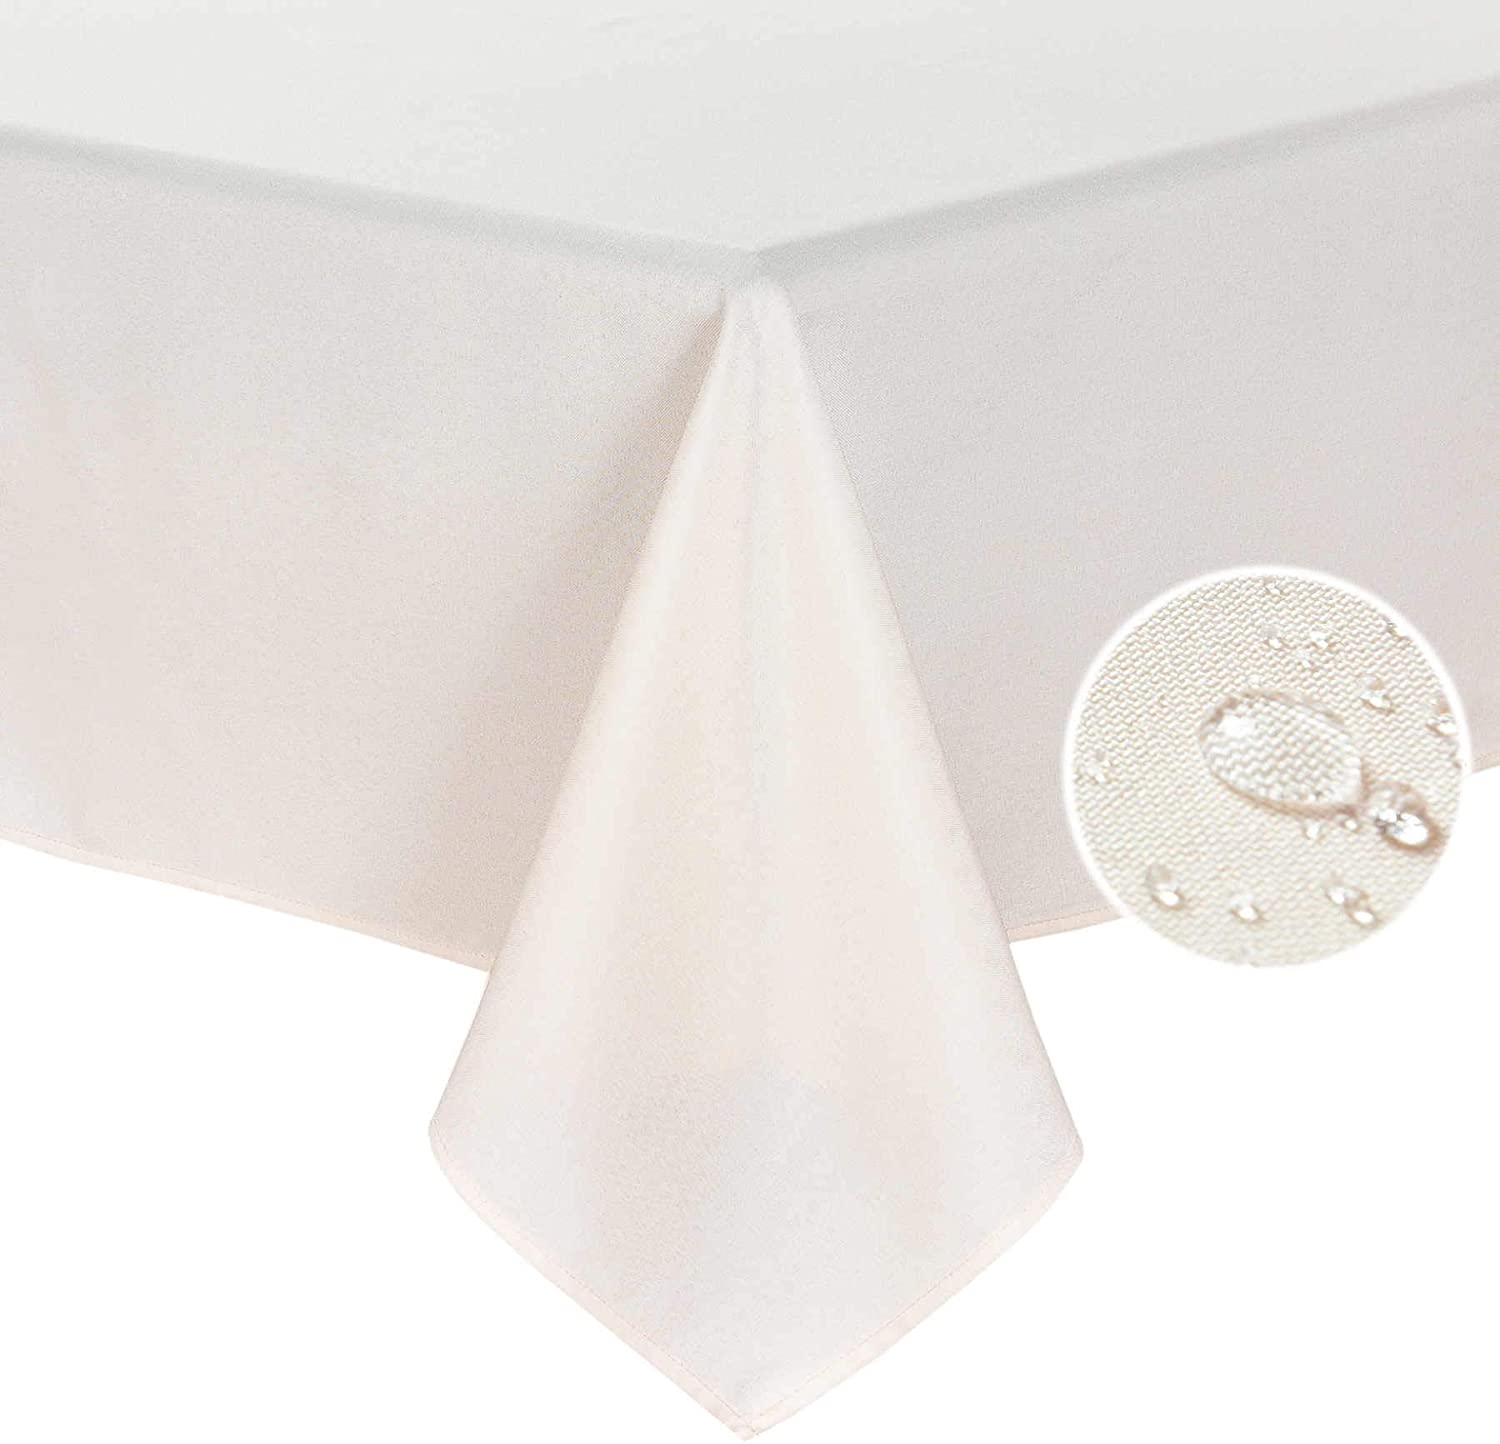 HOMCHIC Faux Linen Rectangle Table Cloth - Washable, Spillproof, Easy Care, Wrinkle Resistant, Thick Indoor and Outdoor Tablecloth, Premium Polyester Fabric-60x104 Inch-Oblong/Rectangular-Peach Pink